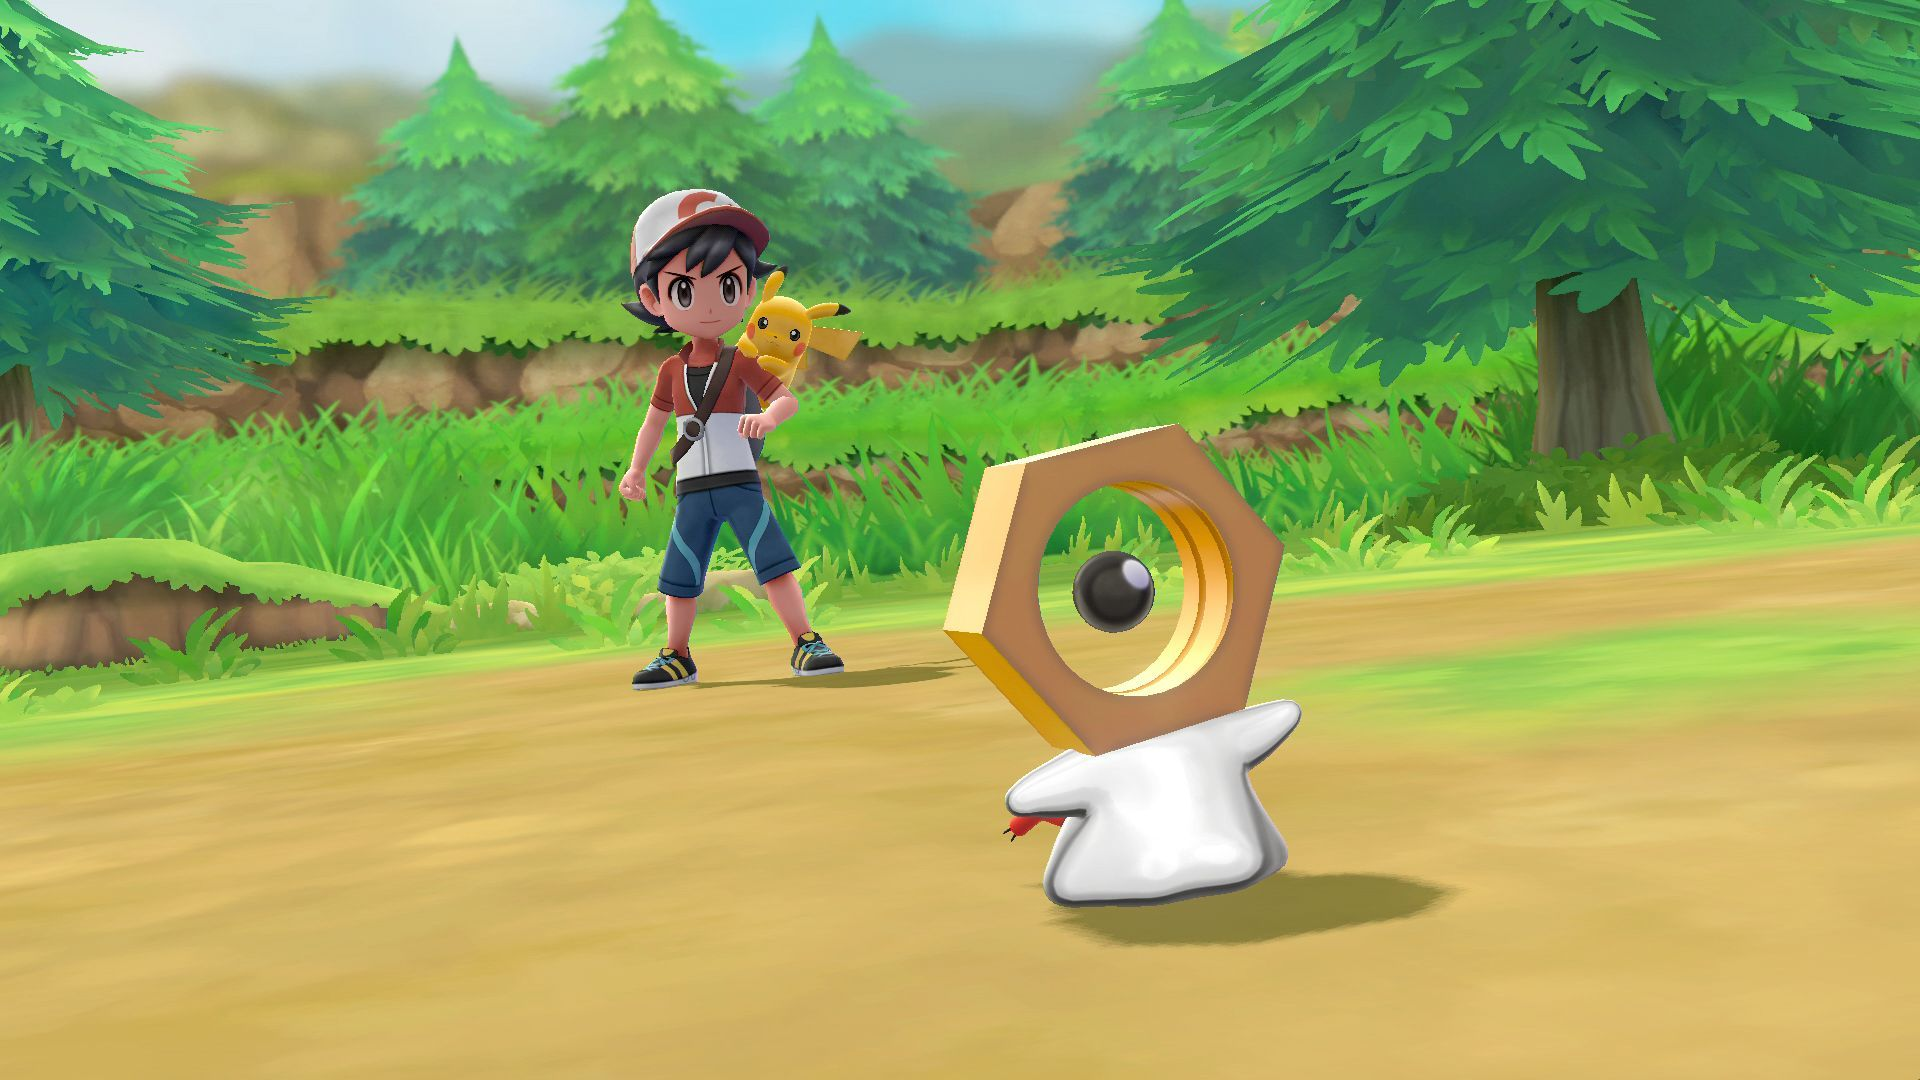 Meltan in Pokémon Let's Go, Pikachu! and Let's Go, Eevee! 1